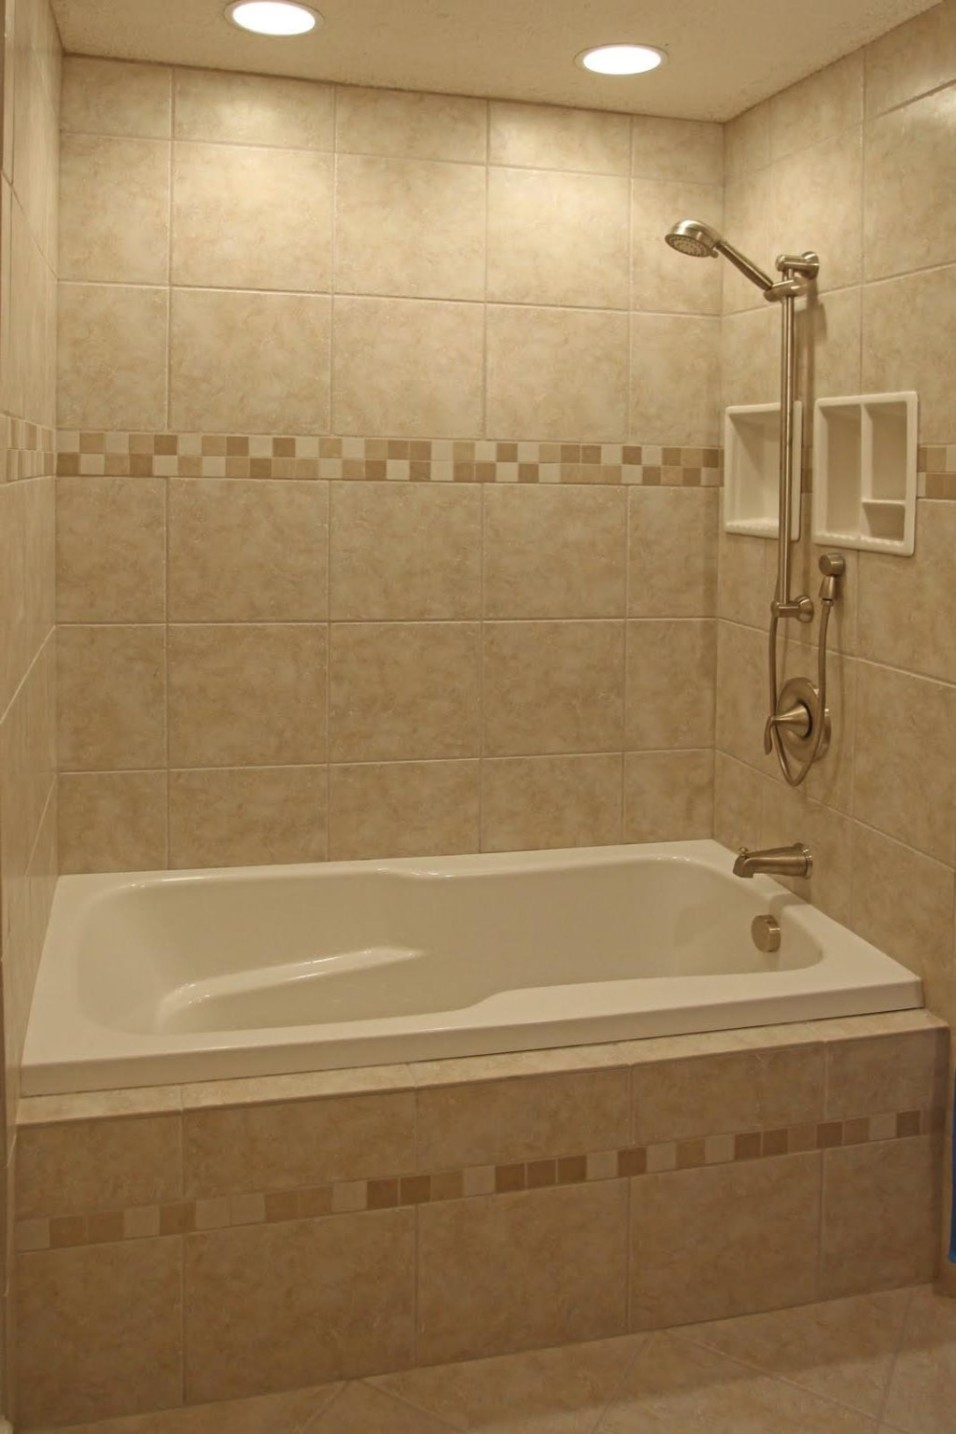 craftsman style bathroom tile - Bathroom Tile Ideas Craftsman Style